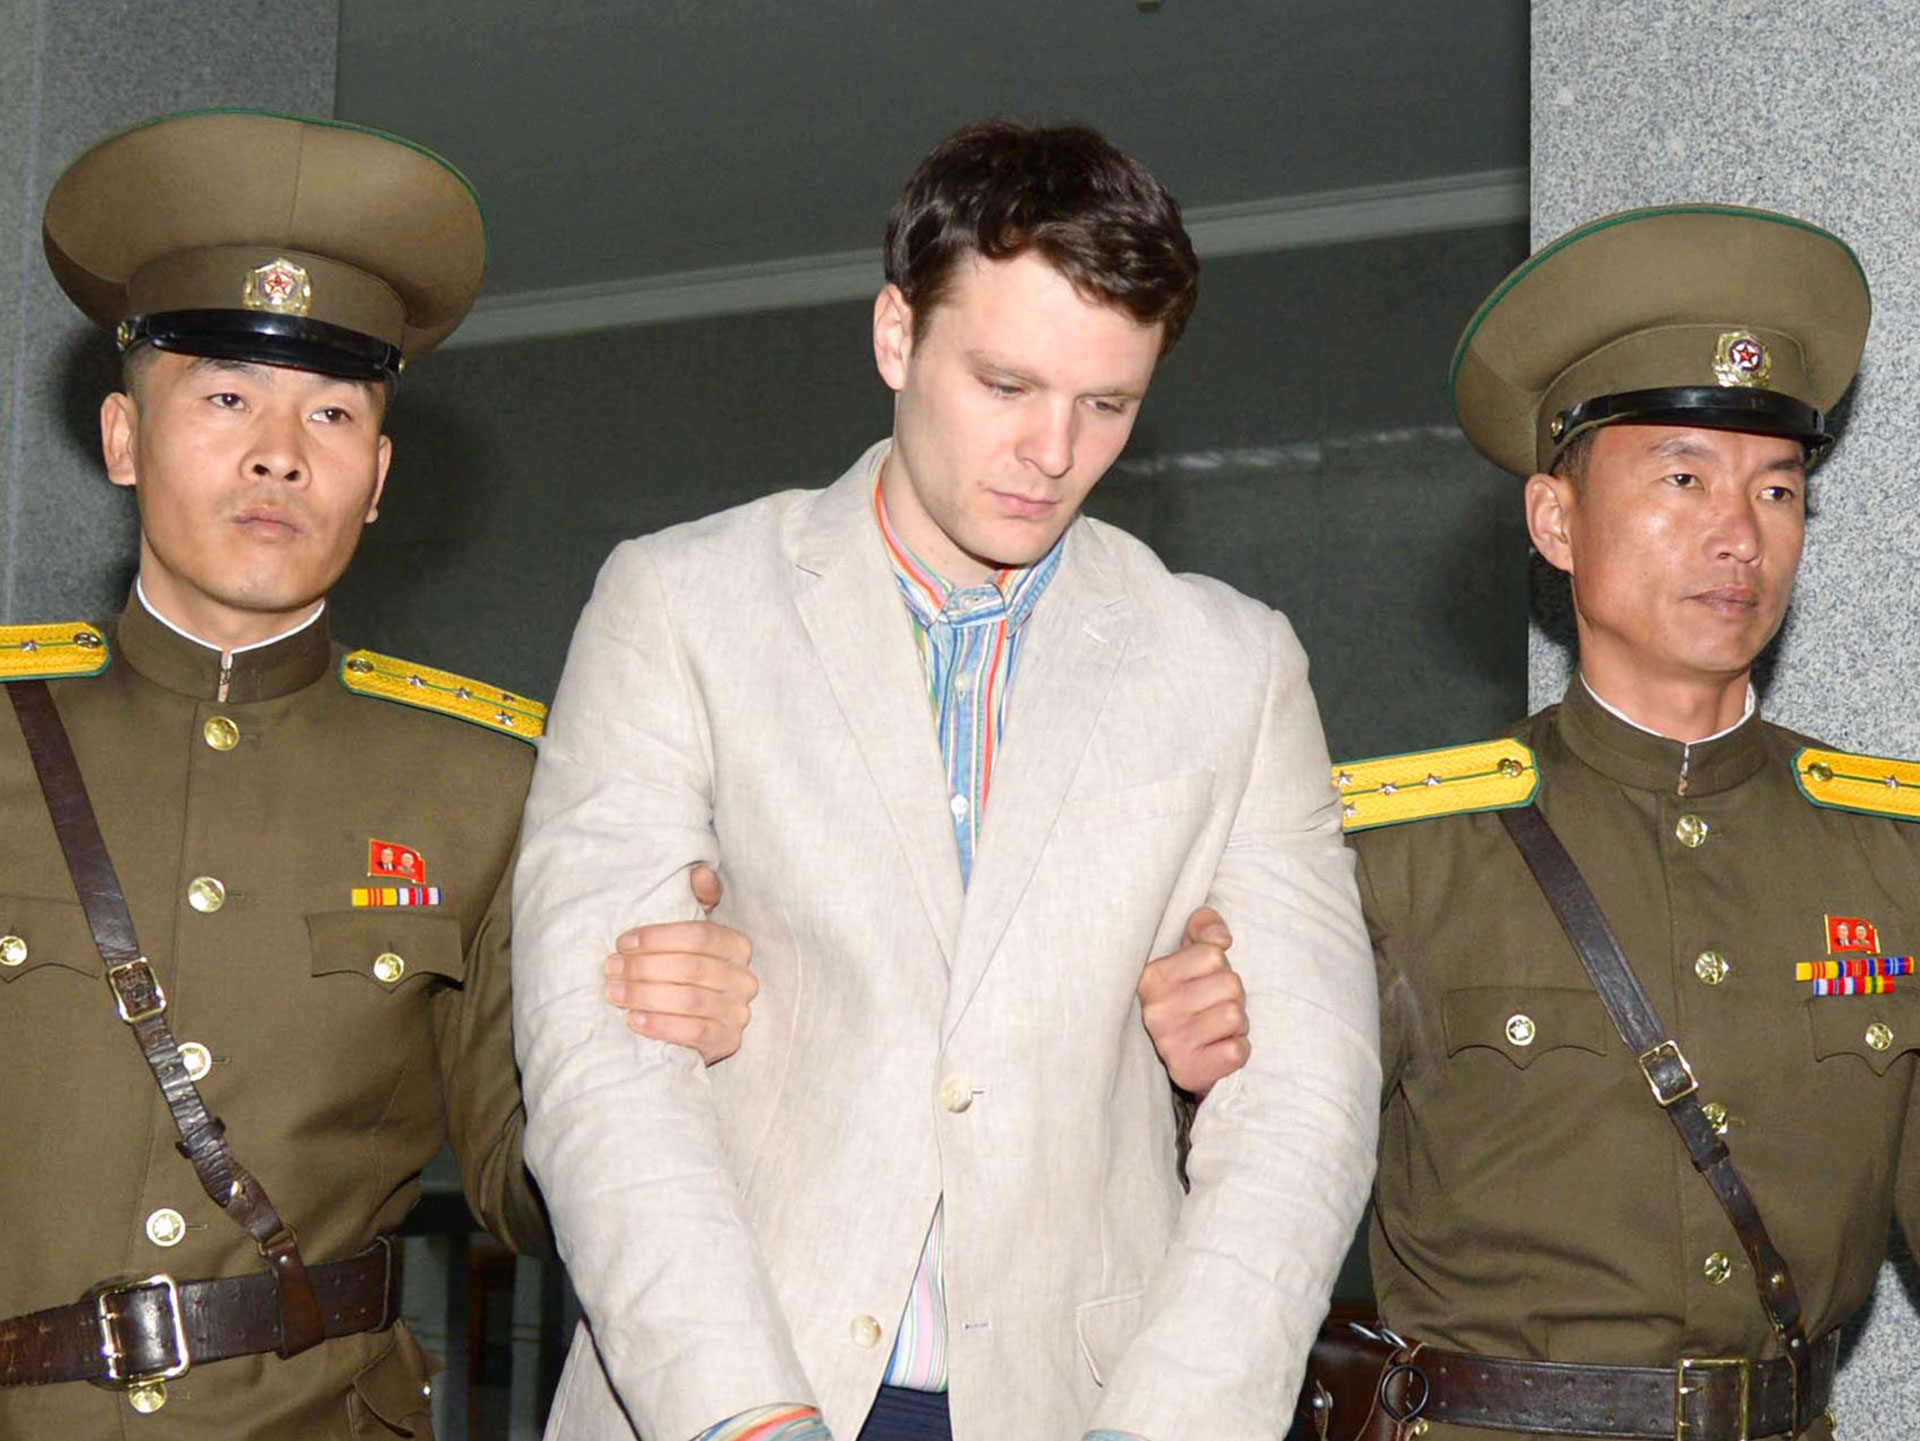 North Korea denies torturing American detainee Otto Warmbier